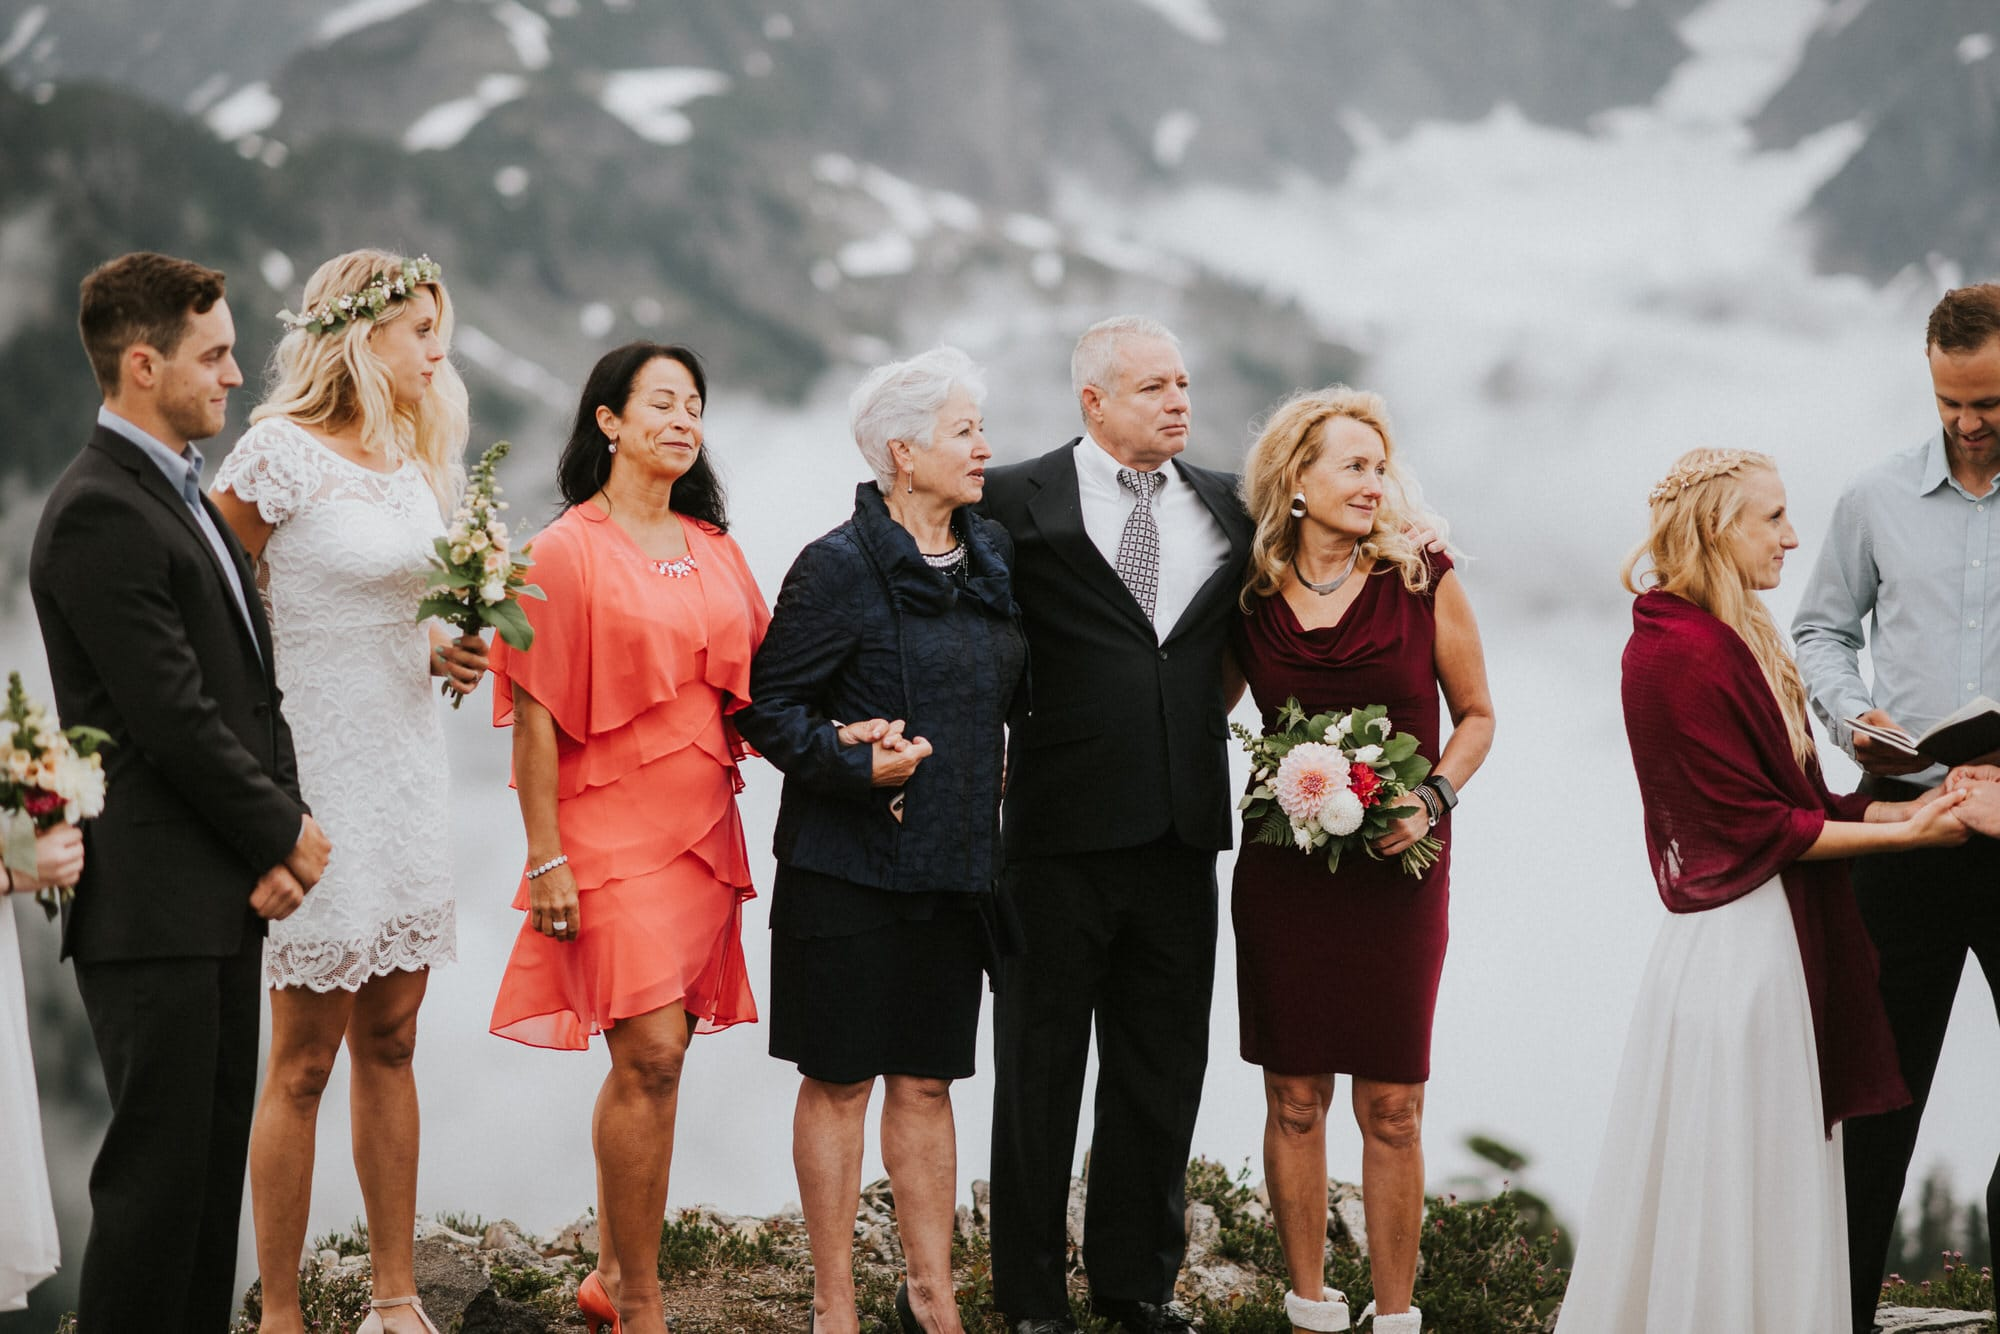 brides family staying warm at outdoor wedding ceremony